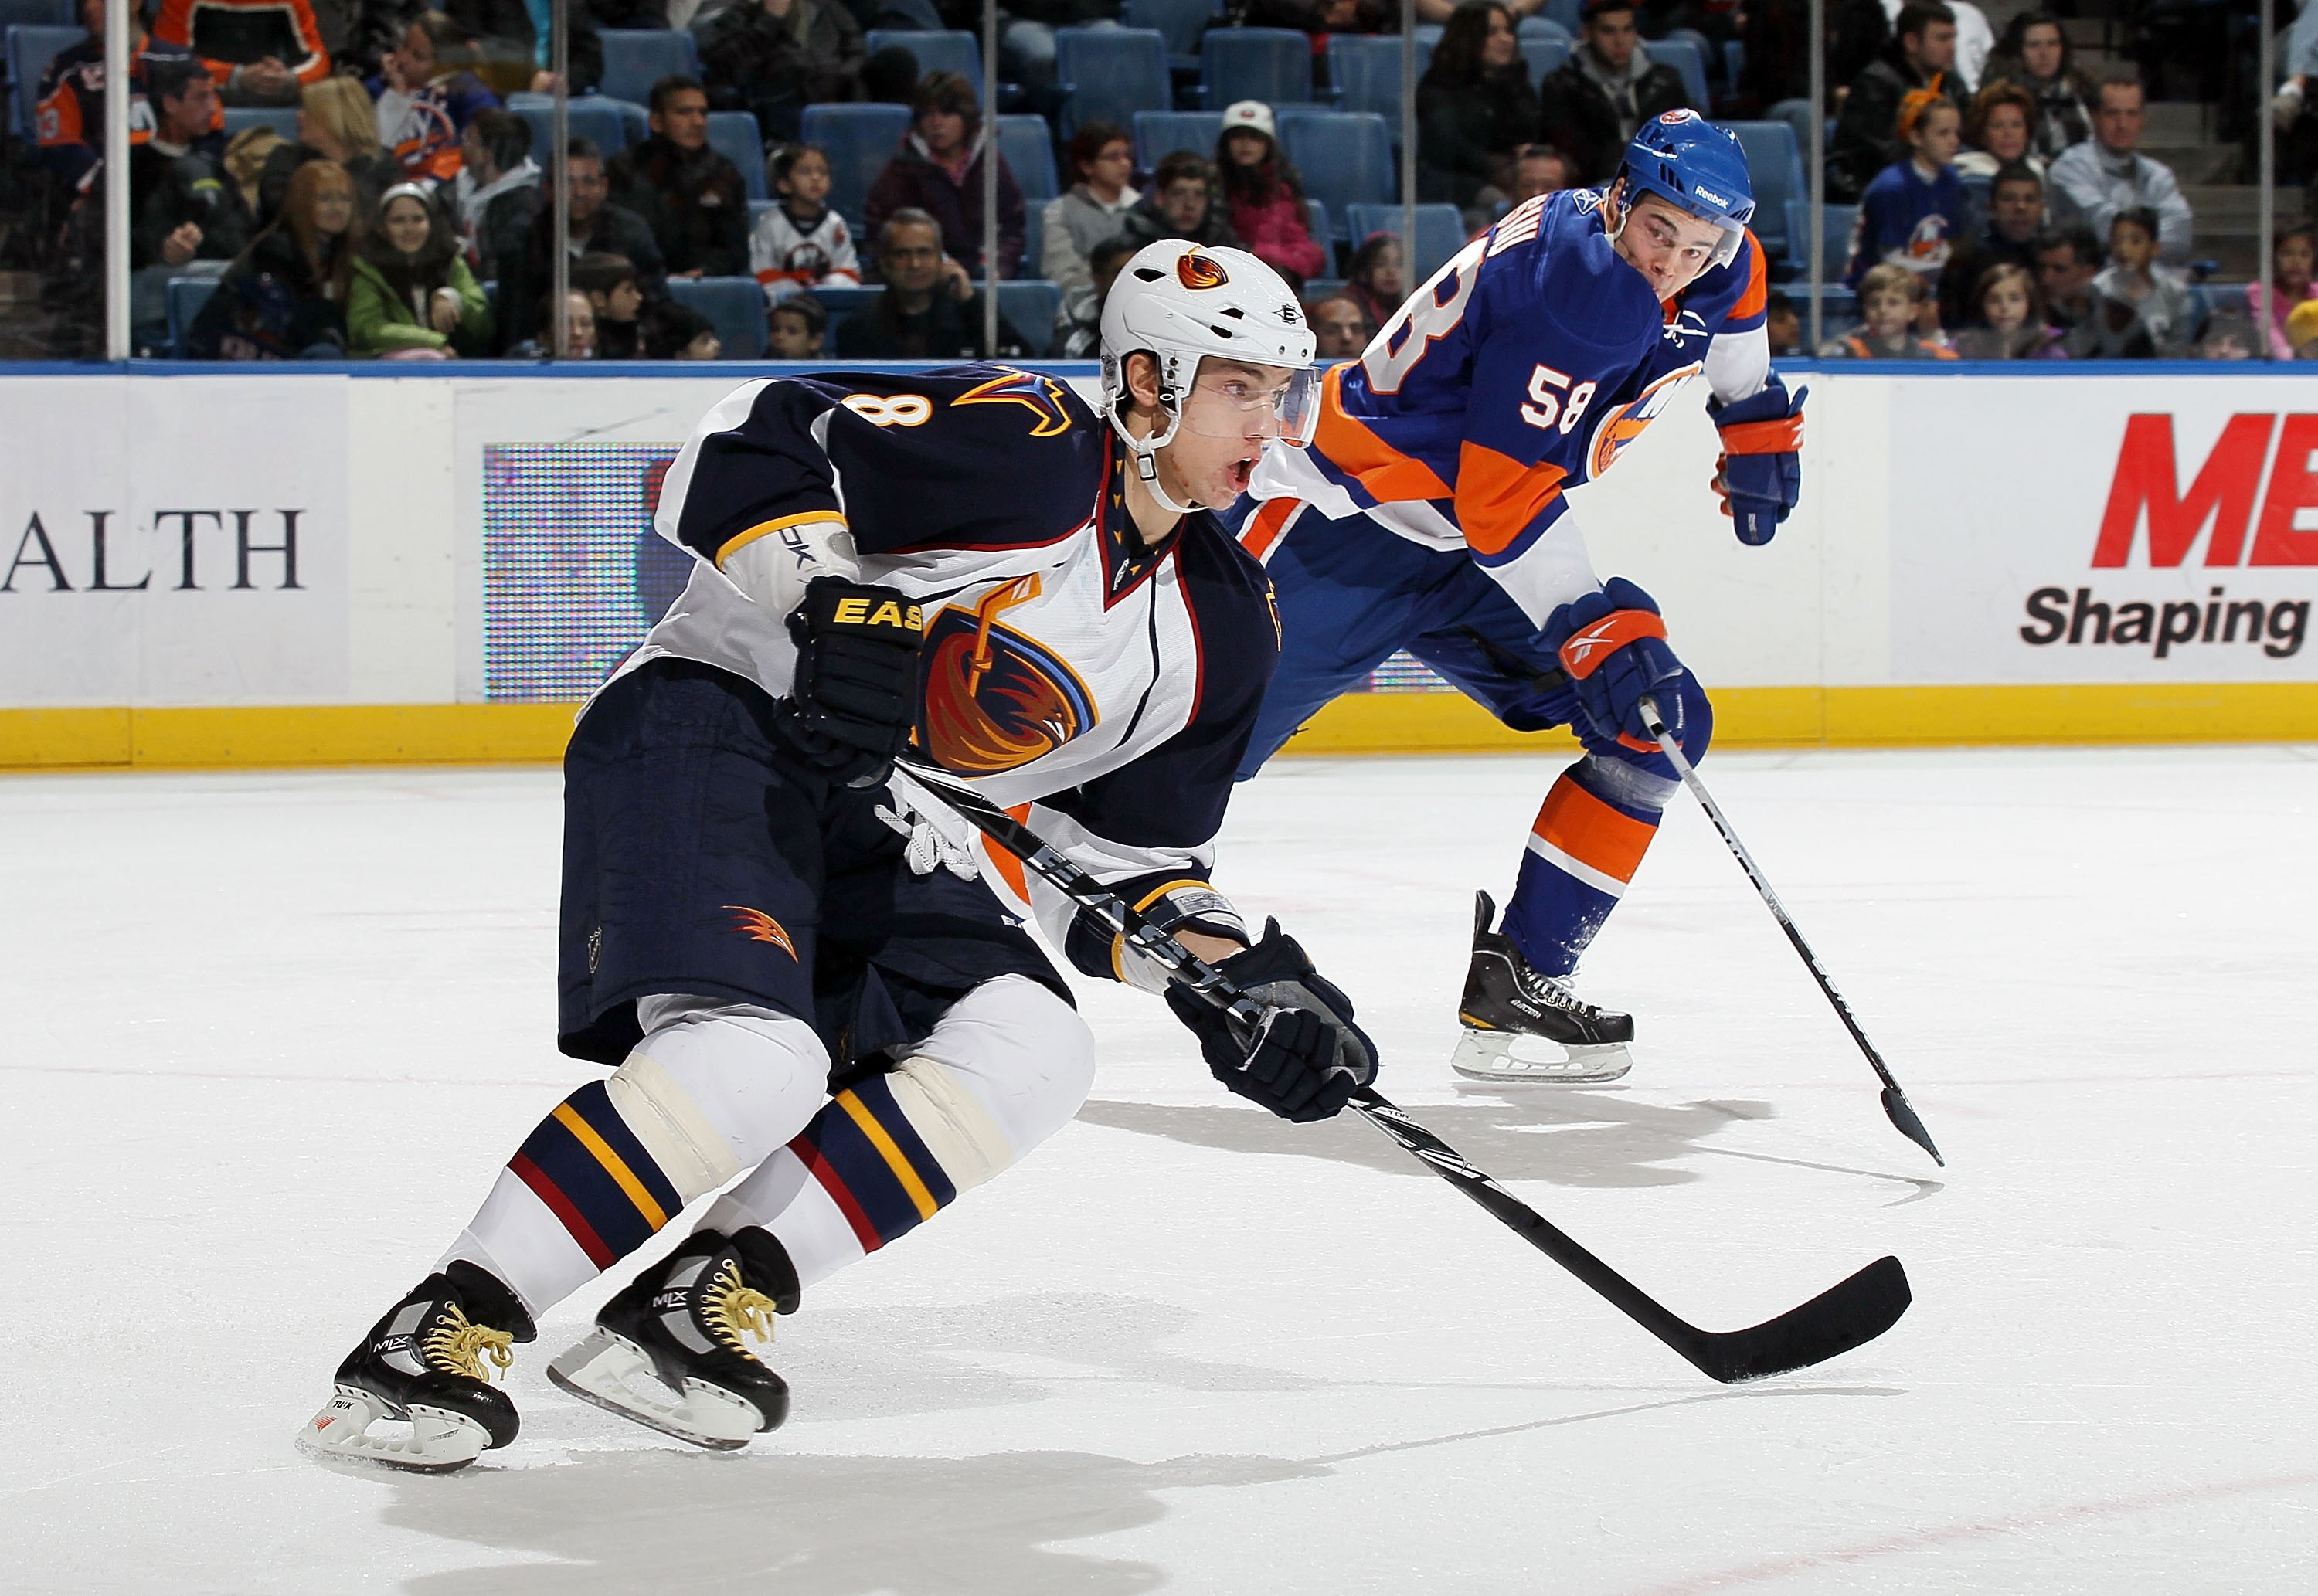 UNIONDALE, NY - DECEMBER 11:  Alexander Burmistrov #8 of the Atlanta Thrashers skates against the New York Islanders on December 11, 2010 at Nassau Coliseum in Uniondale, New York. The Thrashers defeated the Isles 5-4.  (Photo by Jim McIsaac/Getty Images)